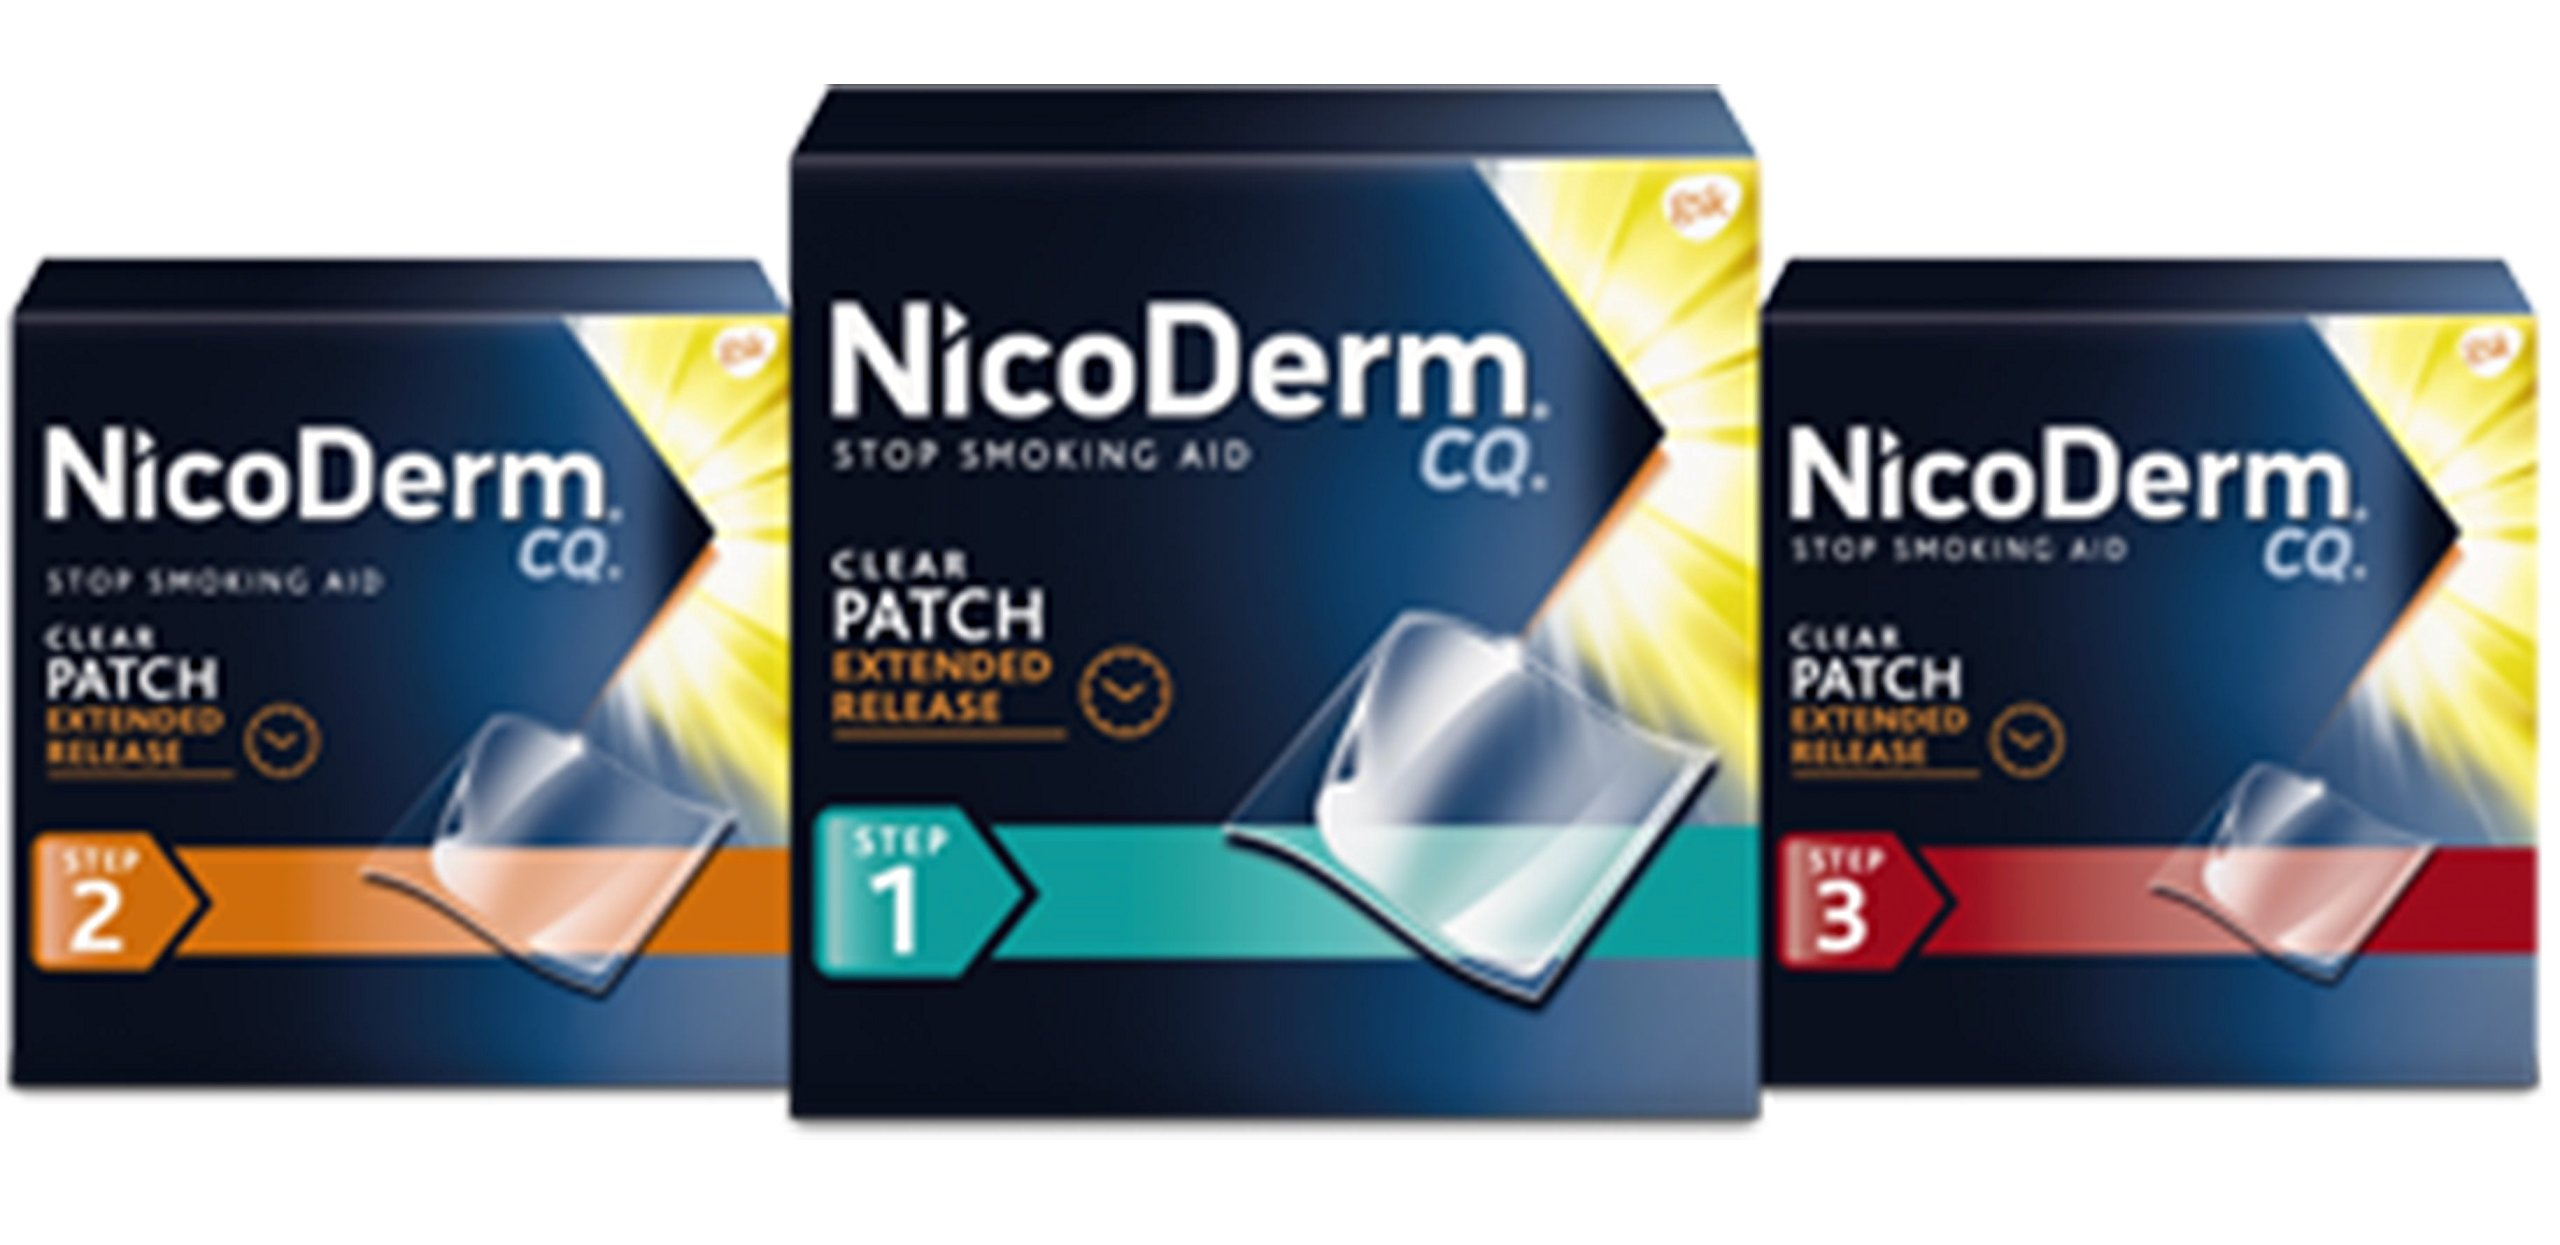 Nicoderm CQ Combo Step 1, Step 2 & Step 3 (14 Clear Patches in each Step).